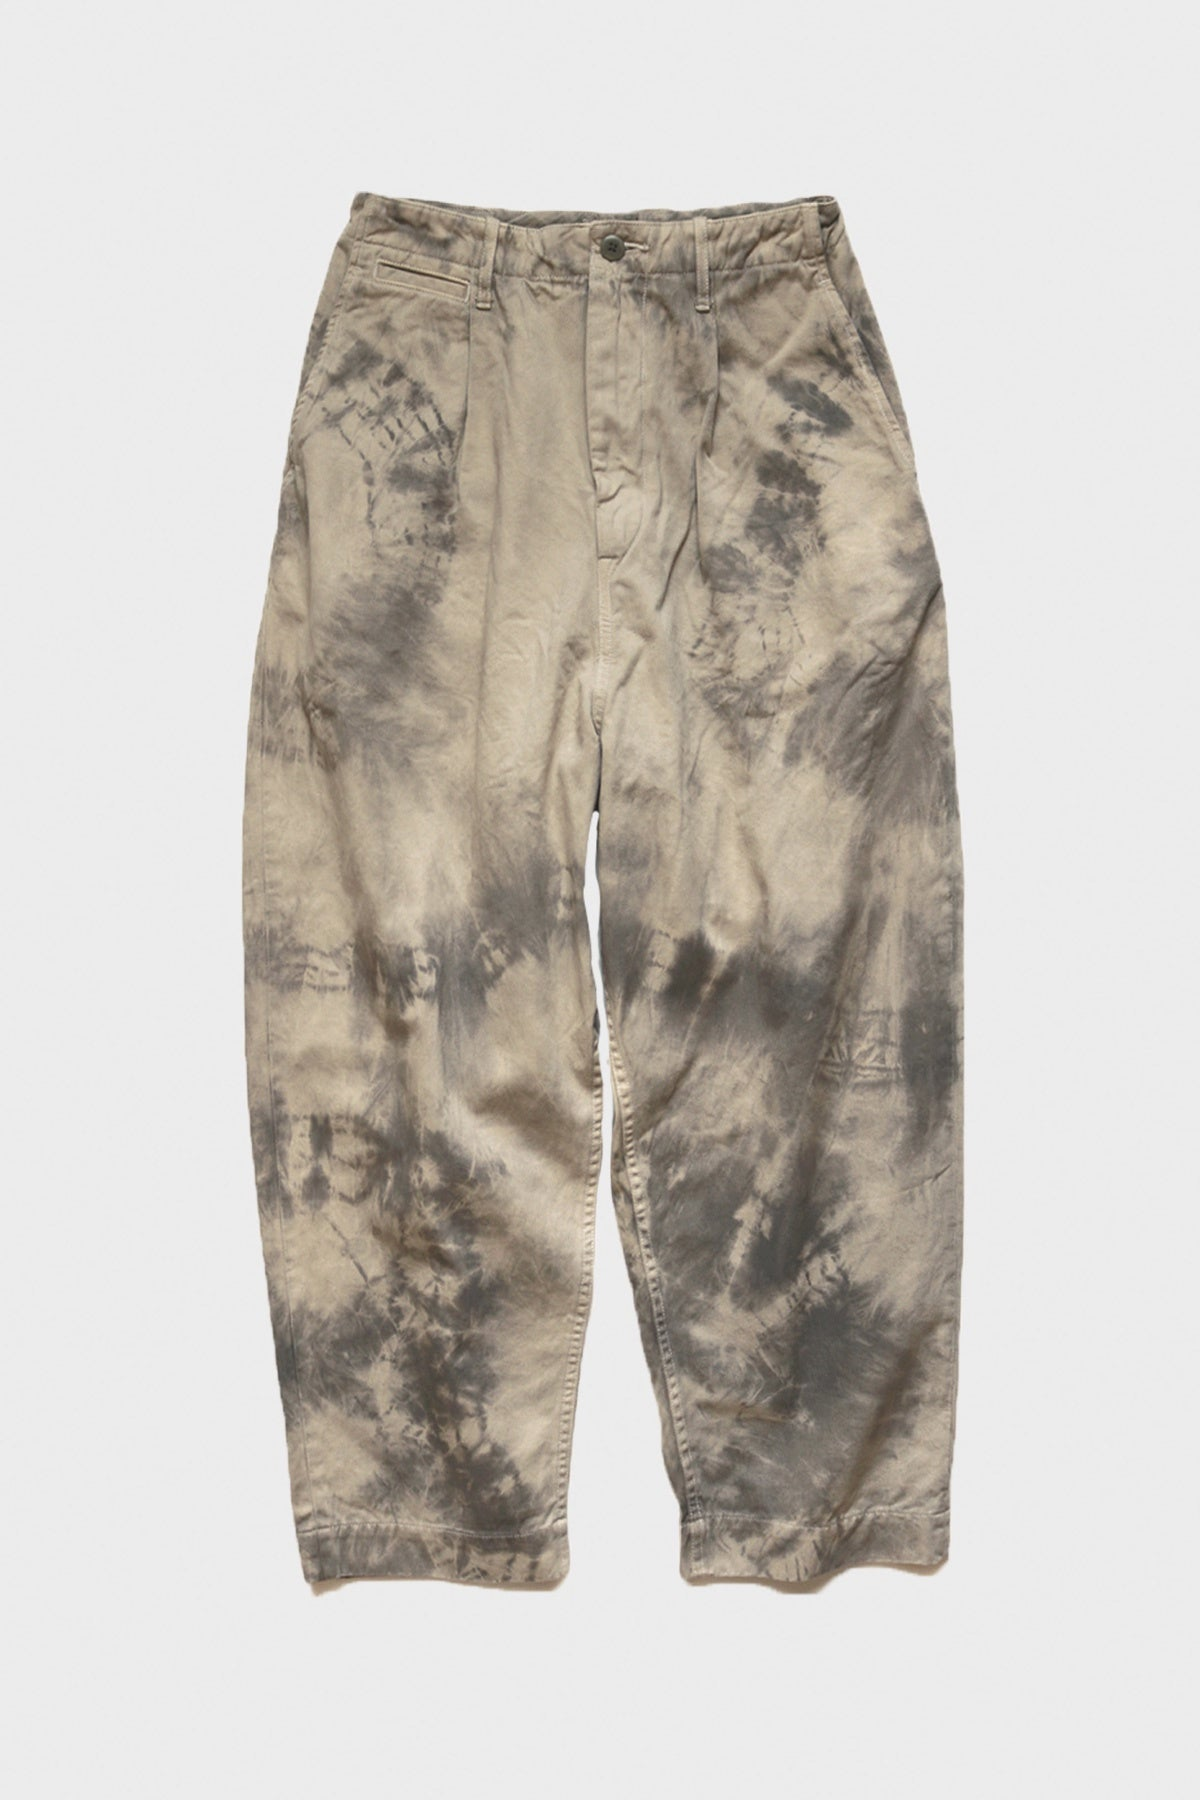 Kapital - Katsuragi High Waist NIME Pants (ASHBURY DYED) - Ecru/Grey - Canoe Club